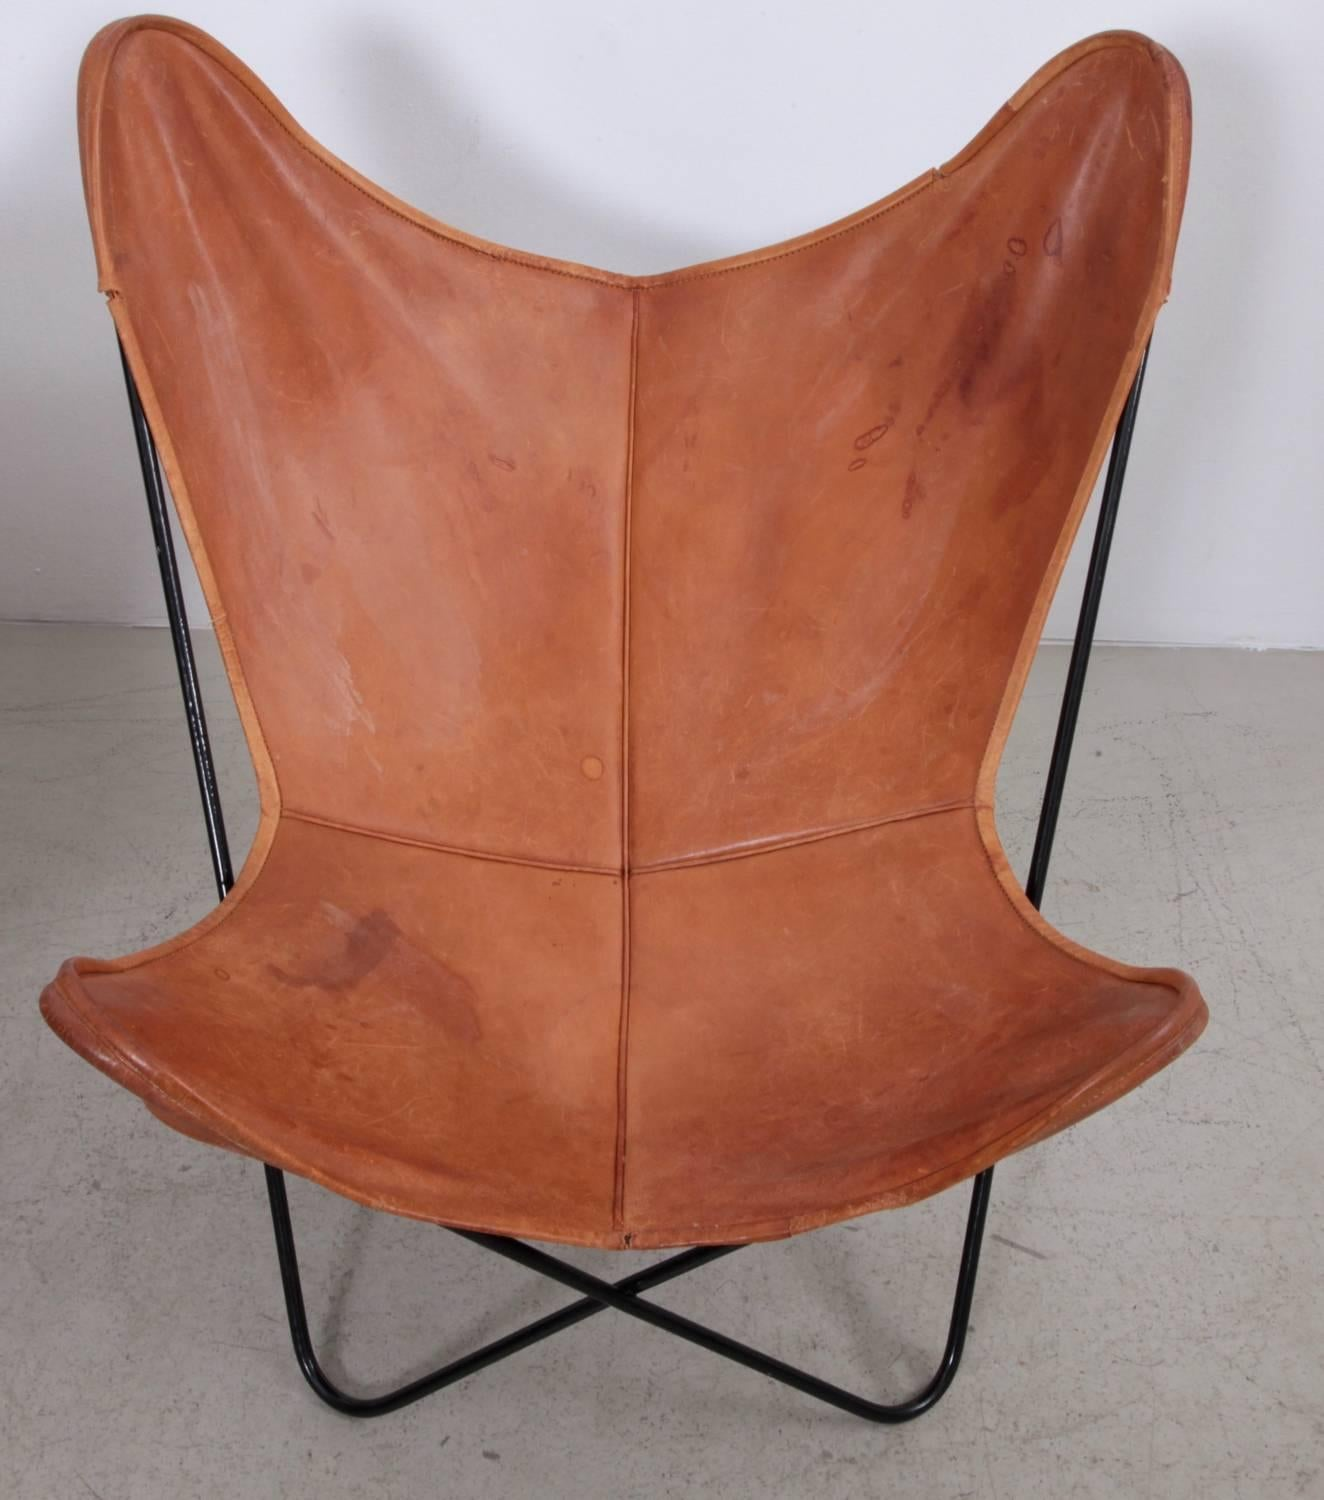 Butterfly Chair Pair By Knoll International With Exceptionally Beautiful  Original Leather In Cognac On A Black